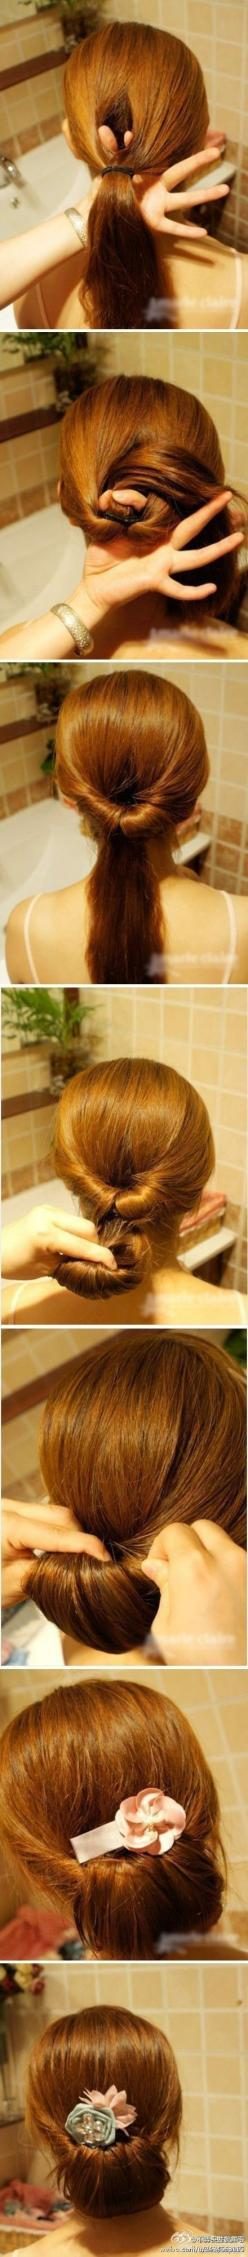 now this hairstyle i can do: Hair Ideas, Hairstyles, Hairdos, Hair Styles, Makeup, Hair Tutorial, Hair Do, Updos, Easy Updo